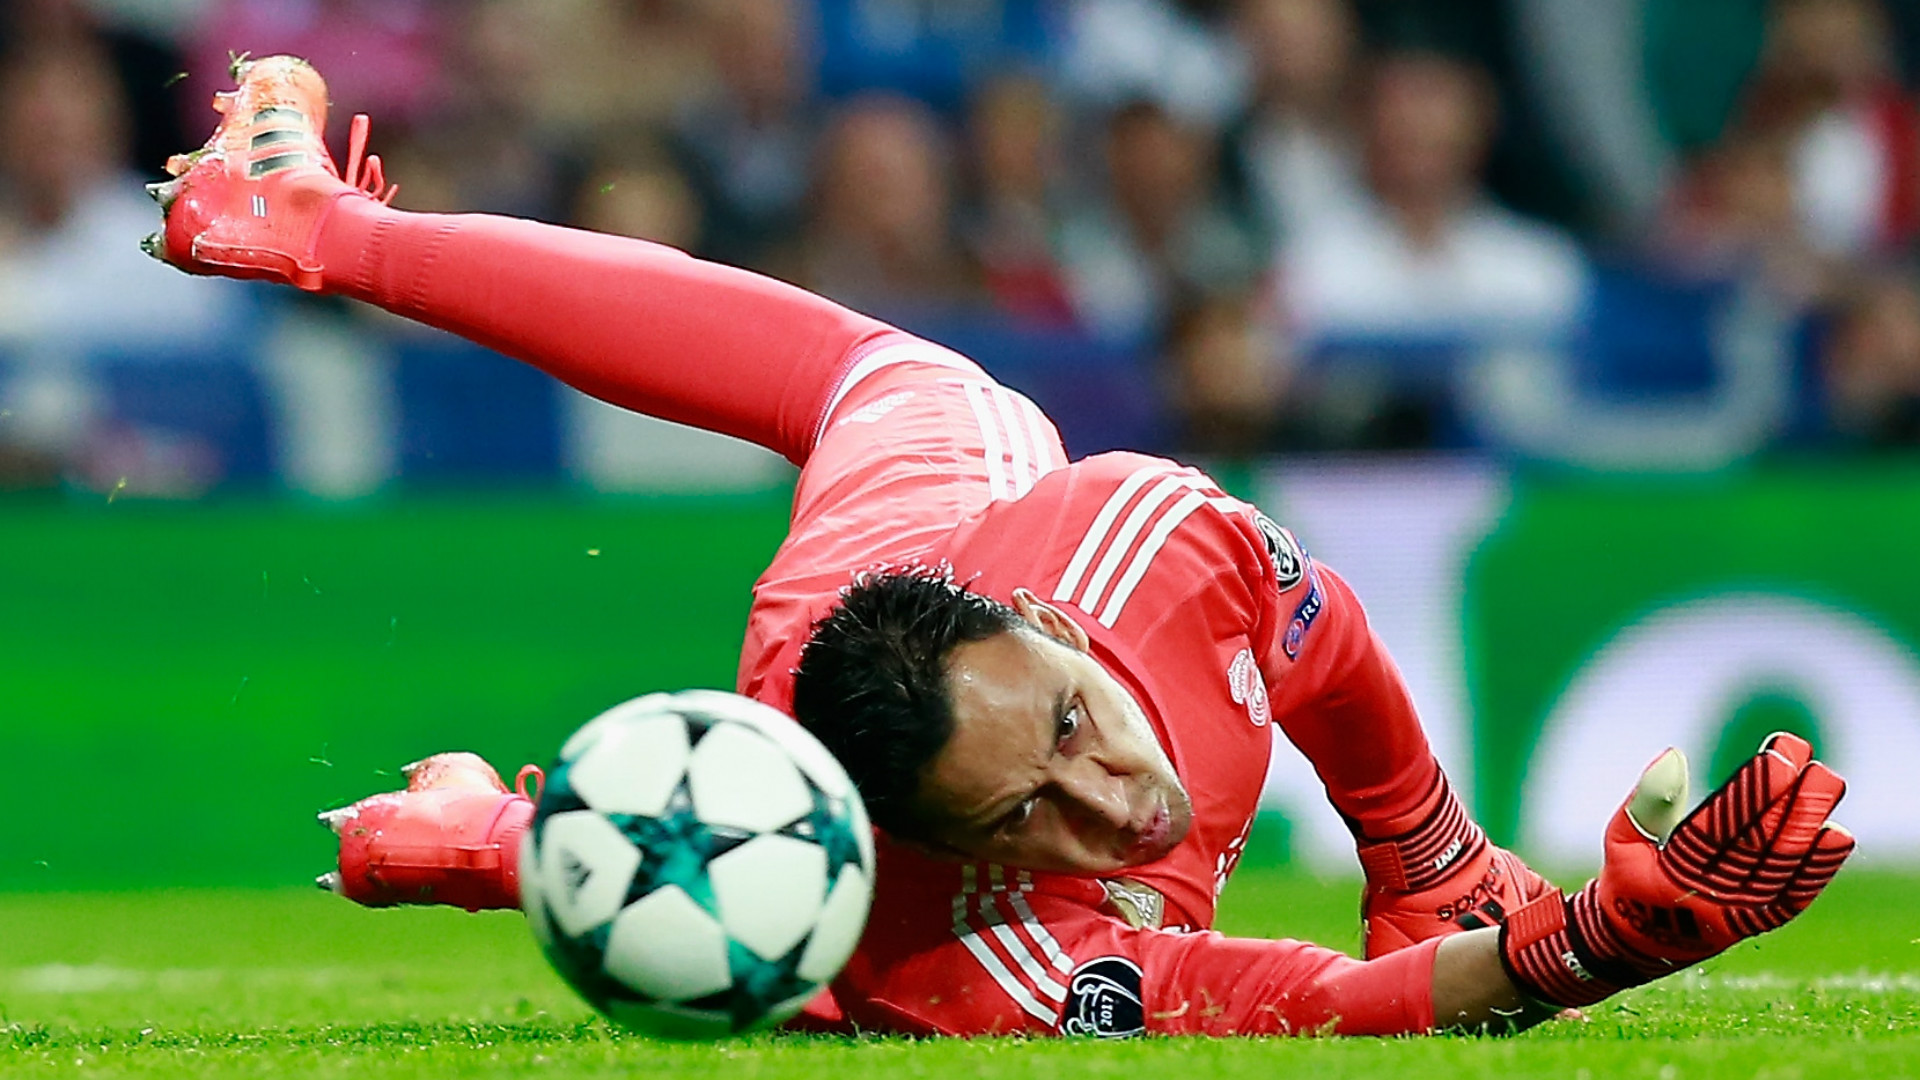 KEYLOR NAVAS REAL MADRID TOTTENHAM CHAMPIONS LEAGUE